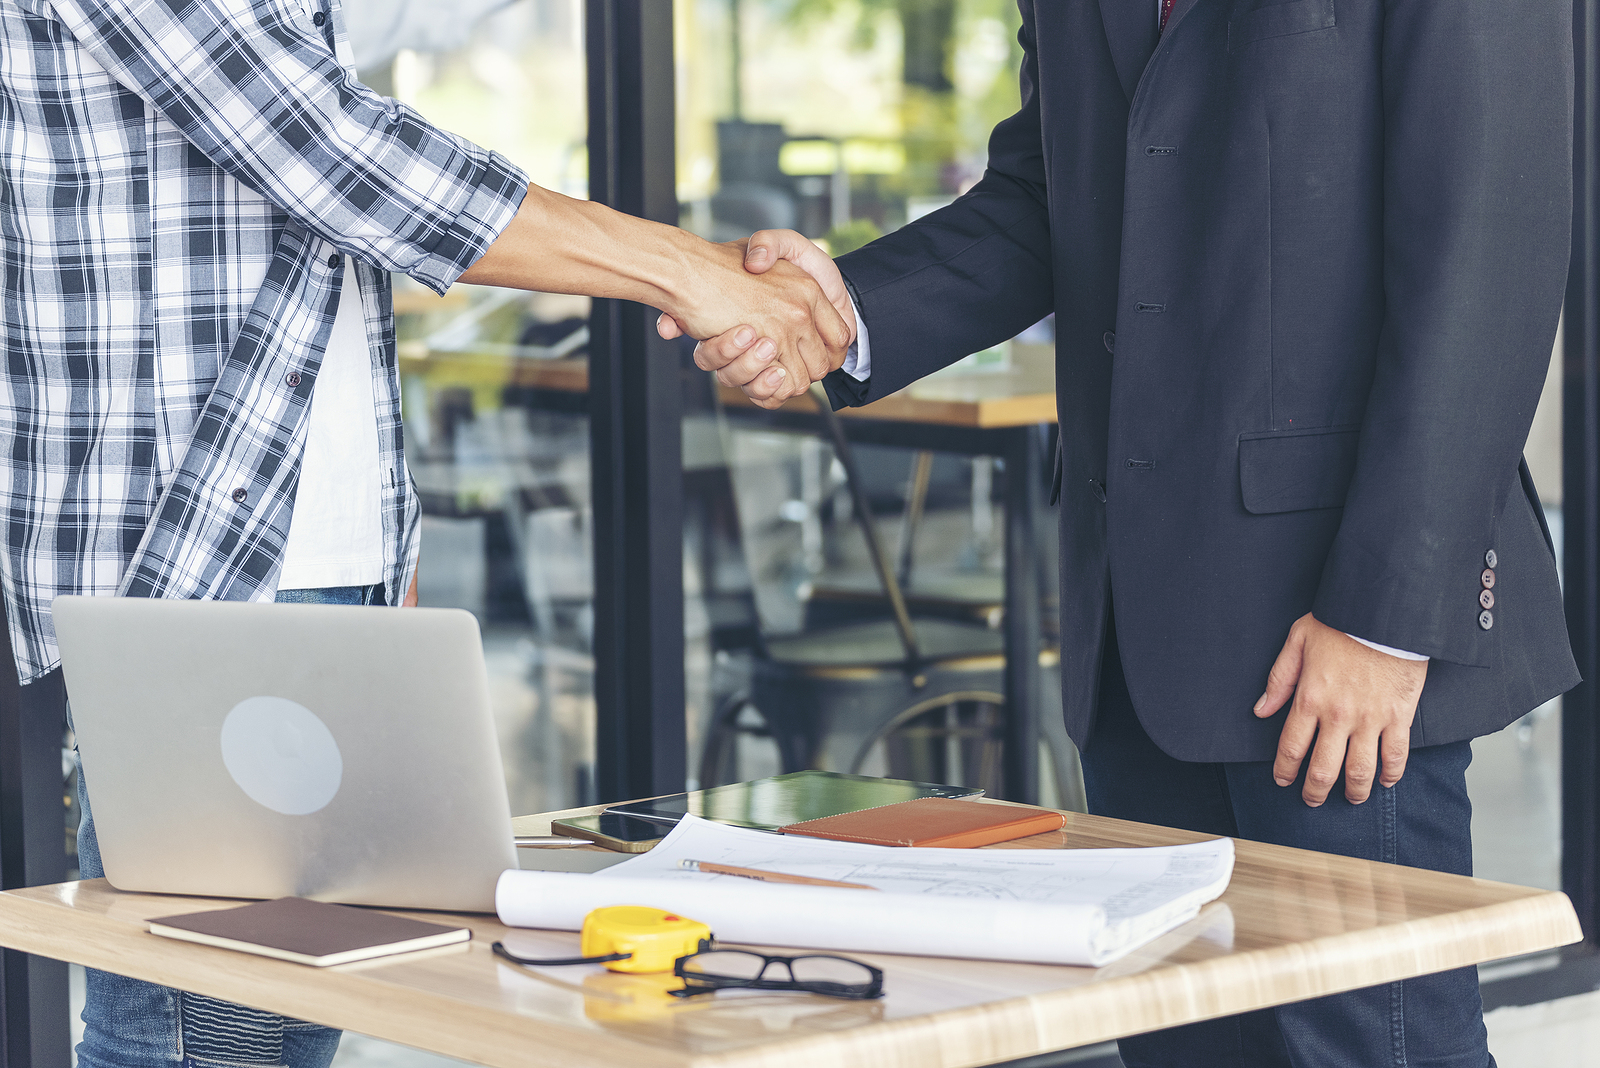 Employer & Candidate Shaking Hands After Agreeing to Contract Jobs